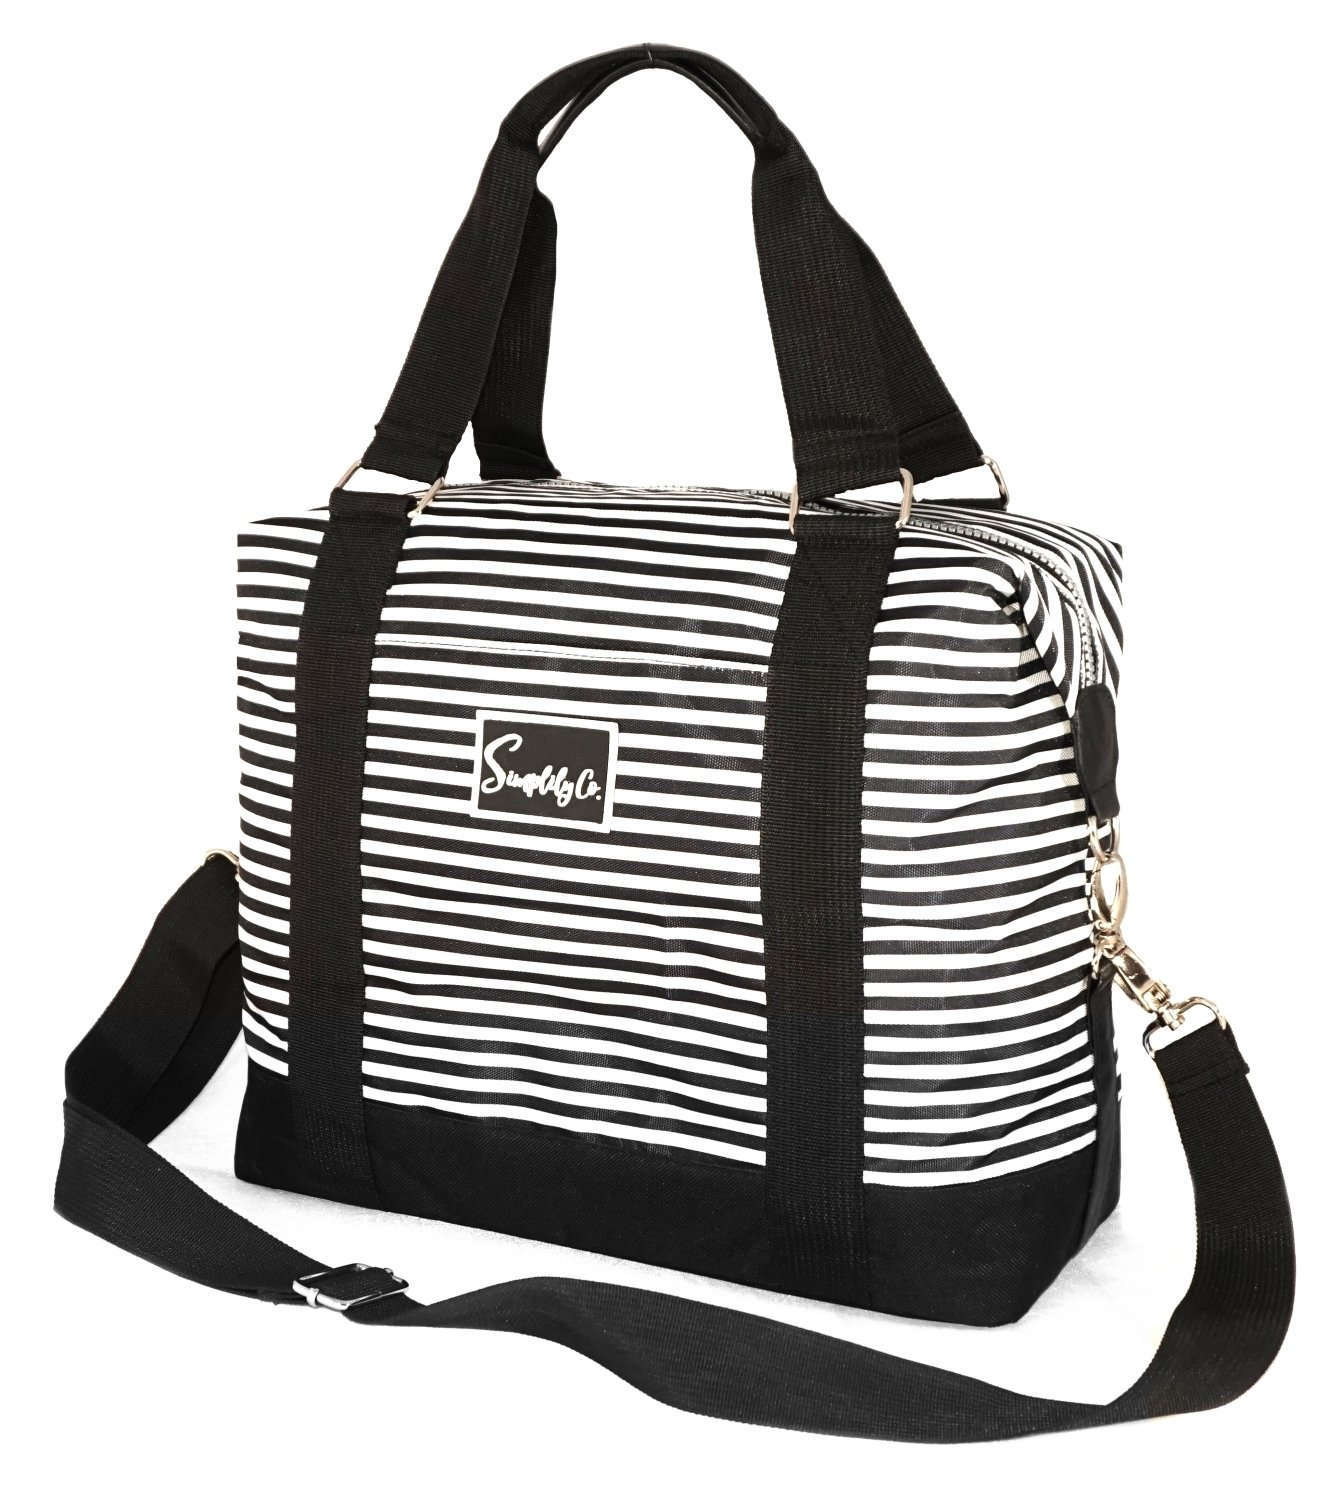 Travel Weekender Overnight Carry-on Under the Seat Shoulder Tote Bag (Small, Black & White Polka Dot) Simplily Co.